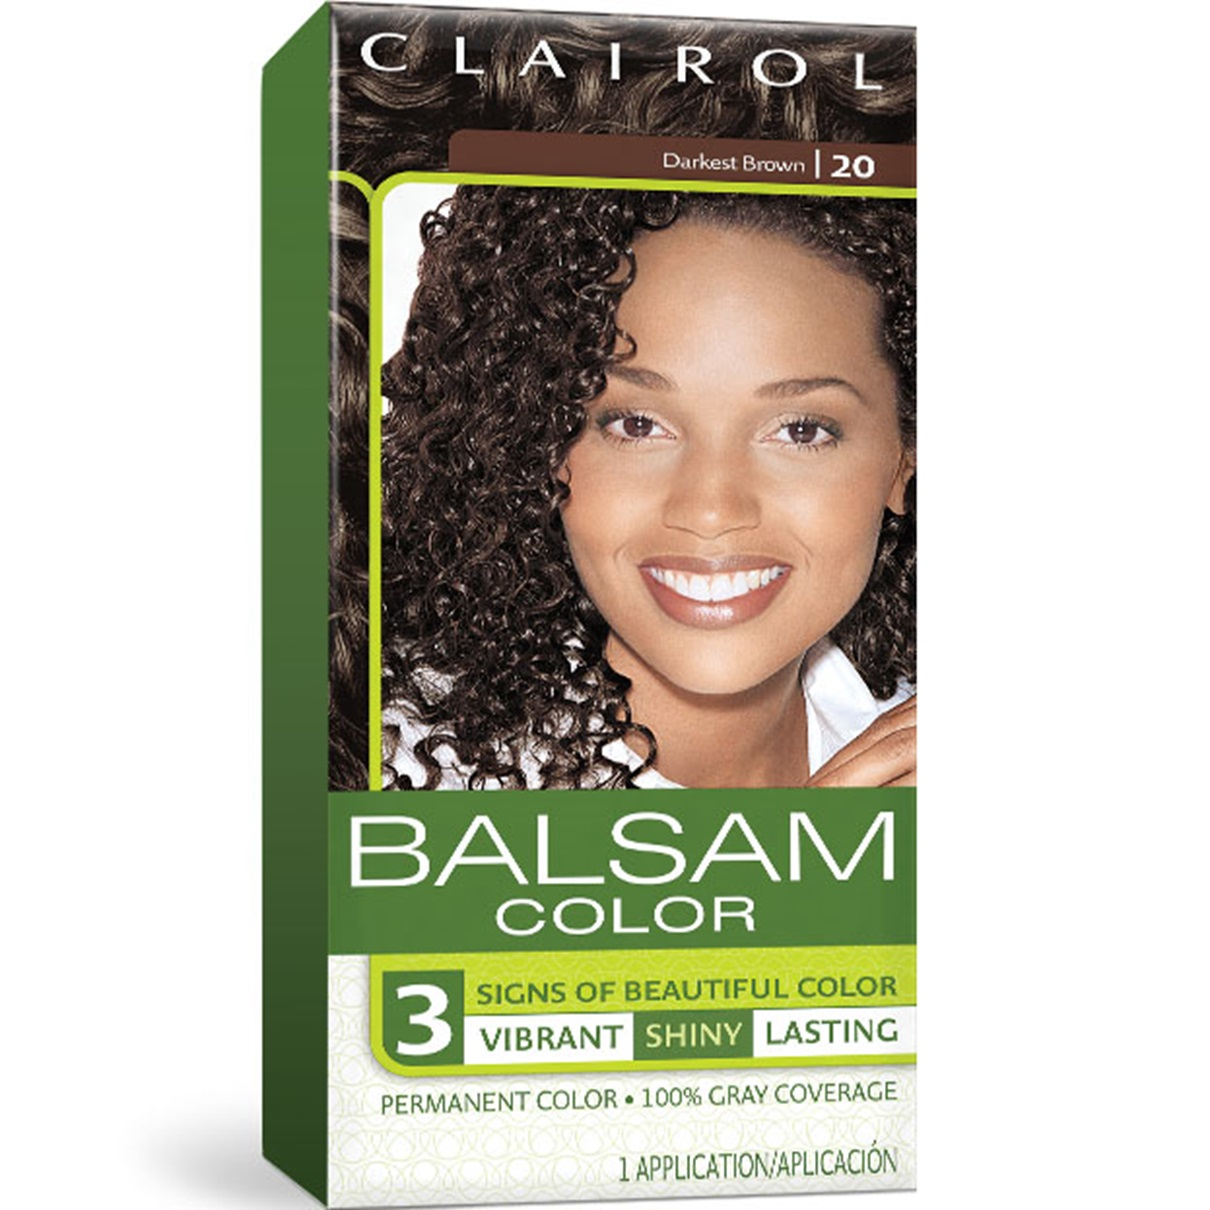 Balsam Permanent Hair Color | Clairol